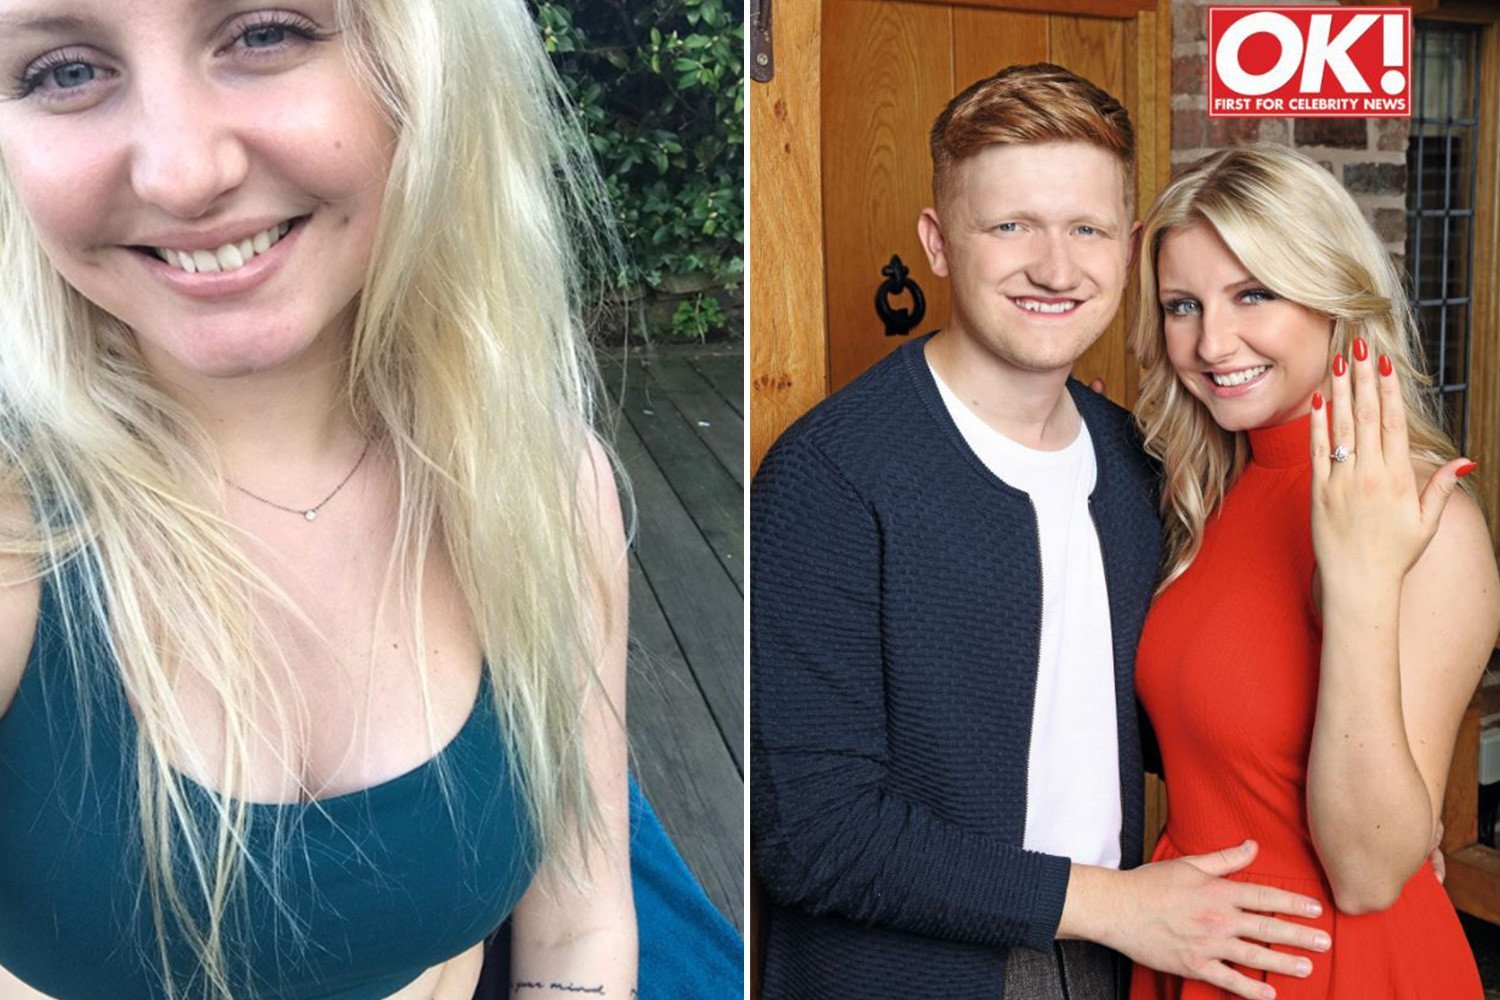 Coronation Street star Sam Aston's fiance Briony Gardner hits back at trolls who called her 'stuck up' in refreshingly honest post about her 'crooked teeth' and 'dodgy eyebrows'